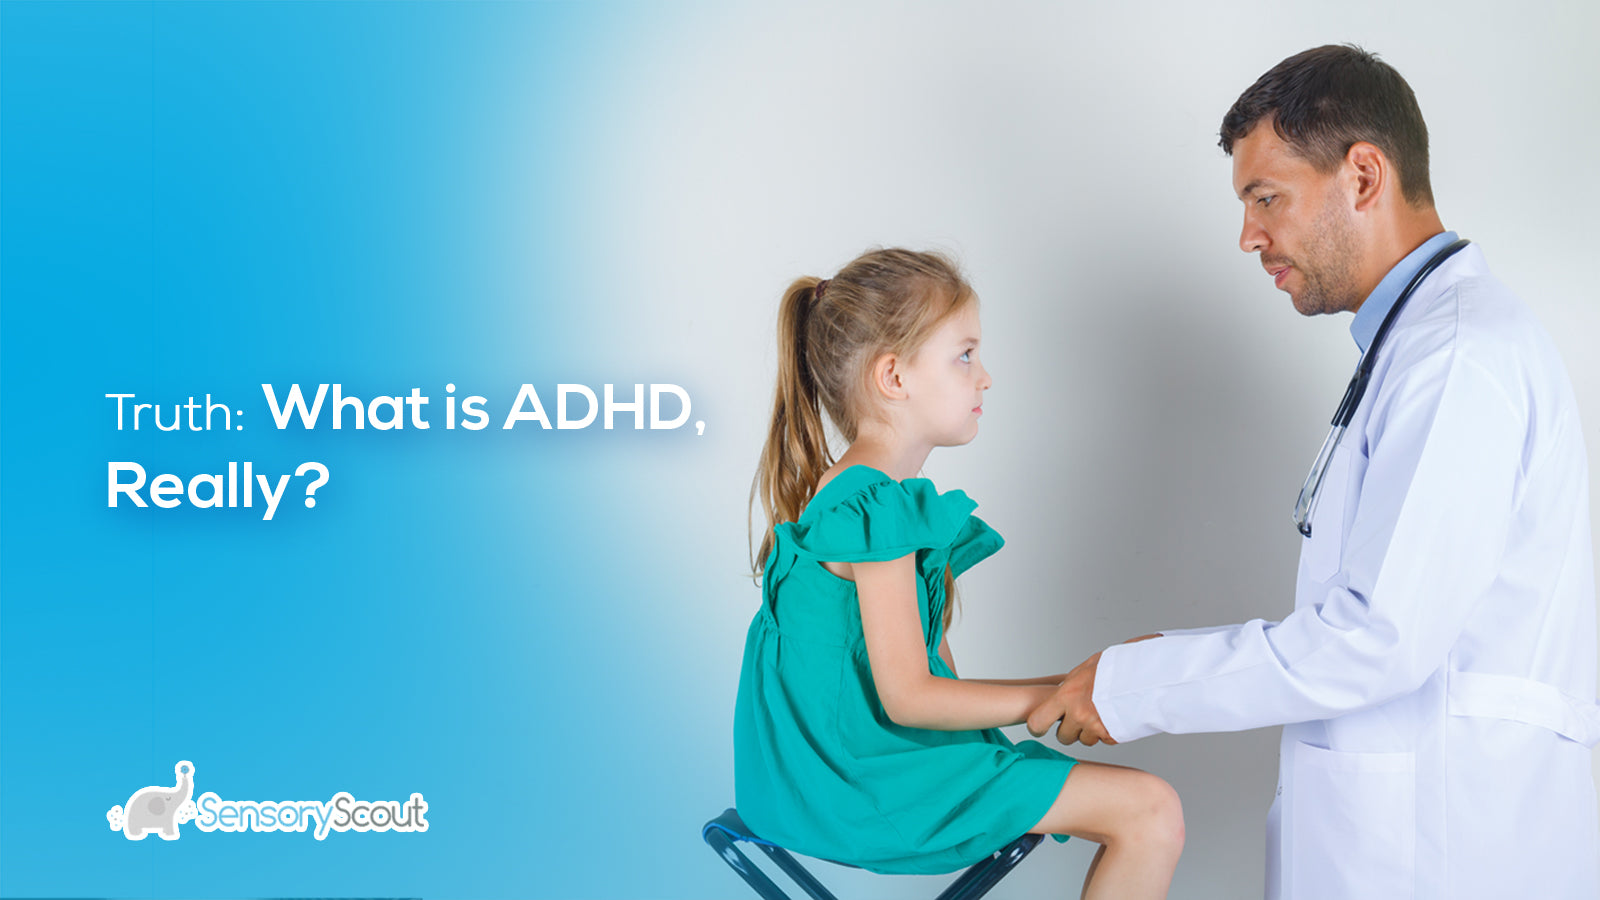 The Truth: What Is ADHD, Really?